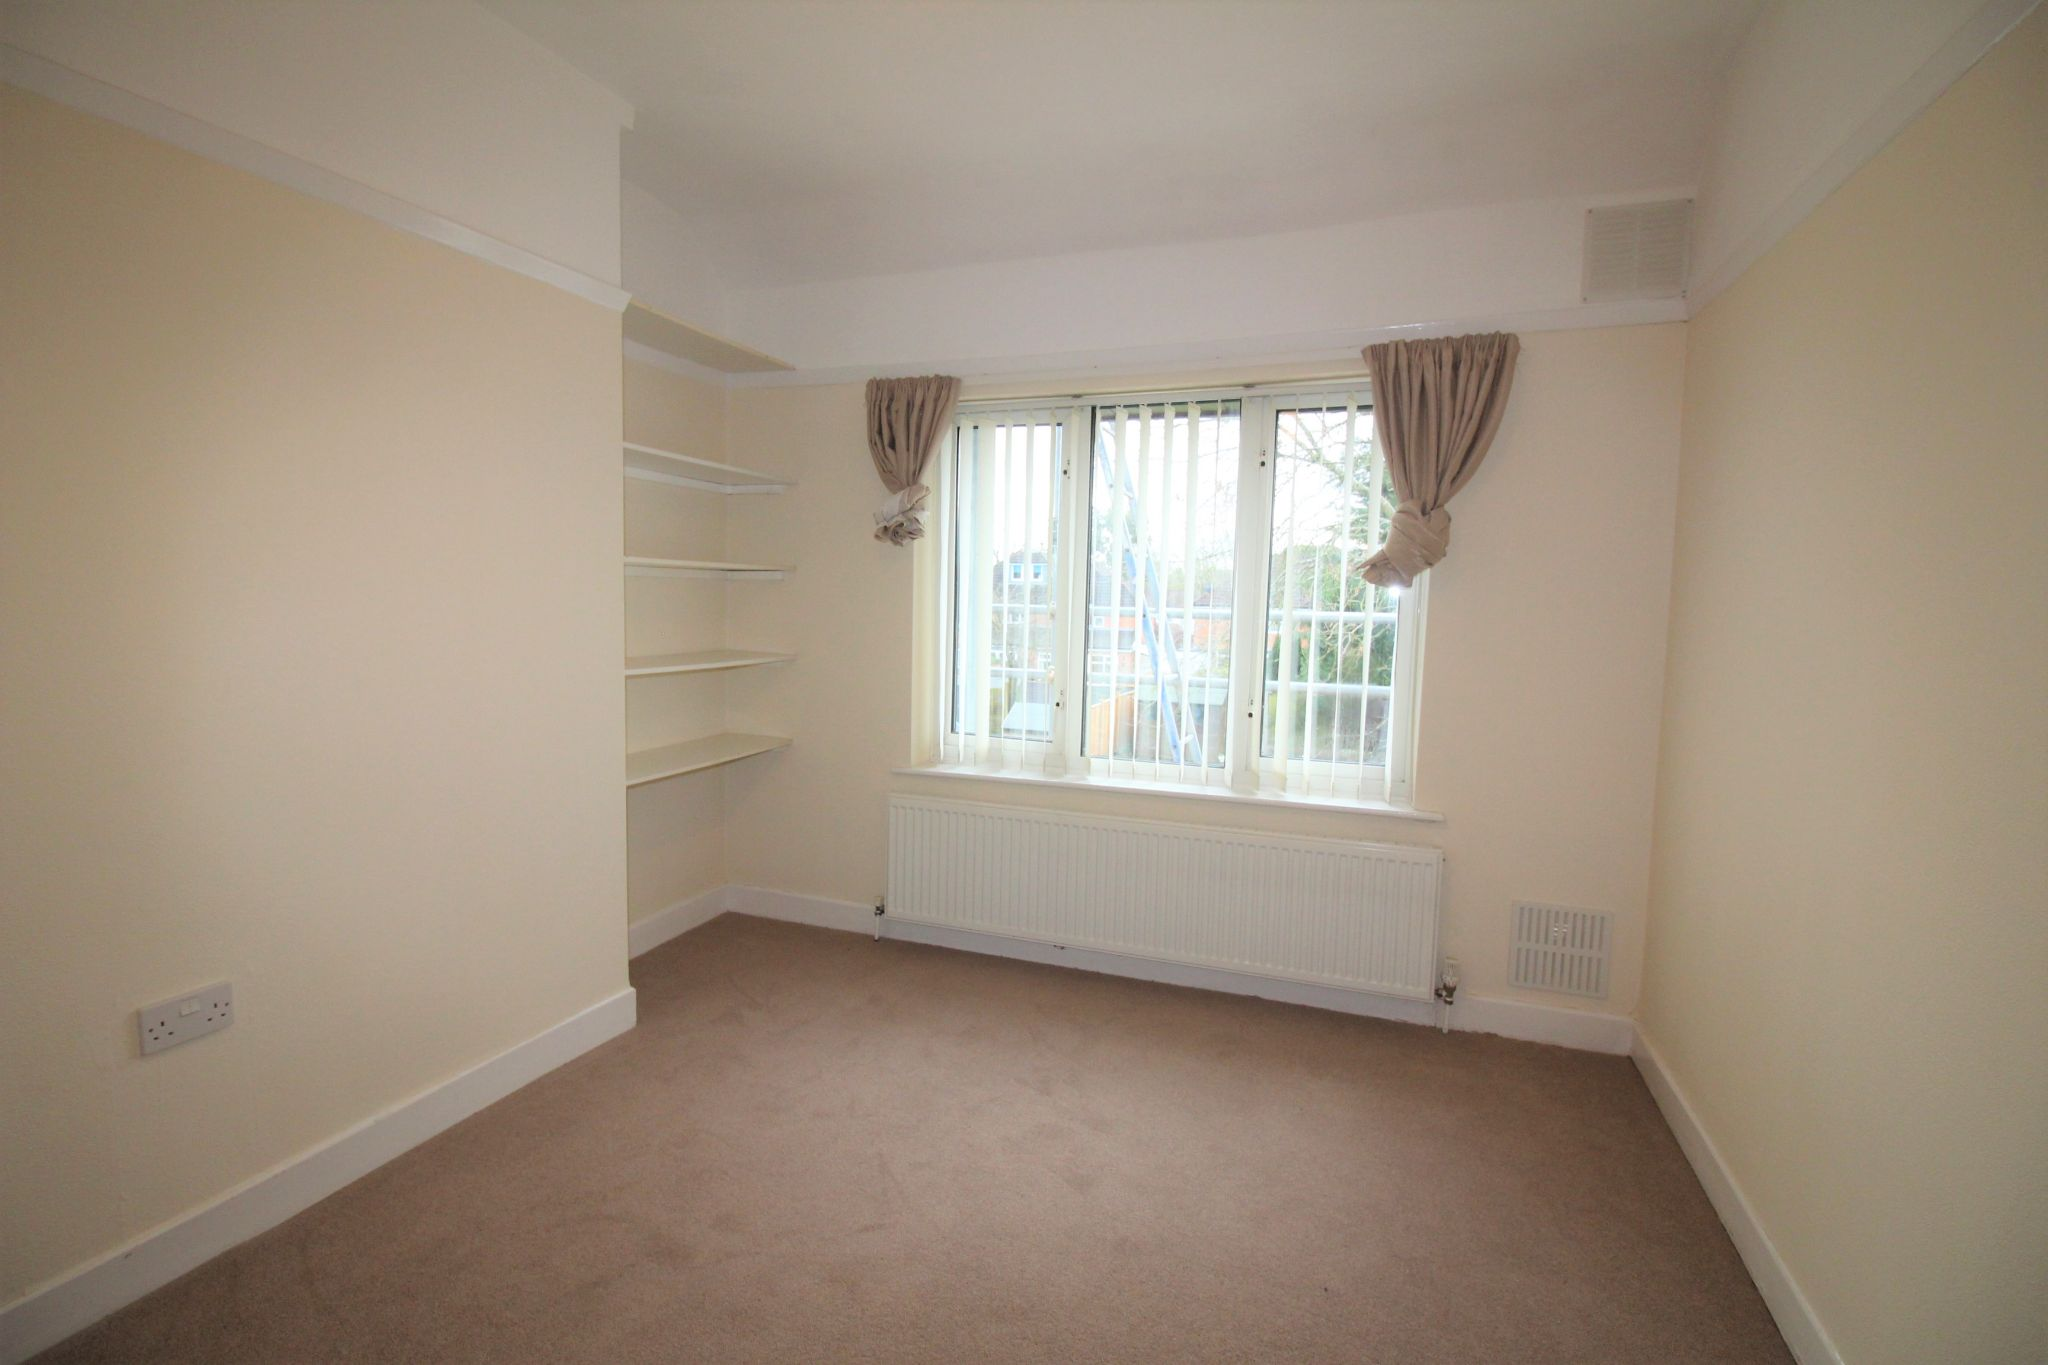 3 bedroom semi-detached house Let Agreed in Solihull - Photograph 10.